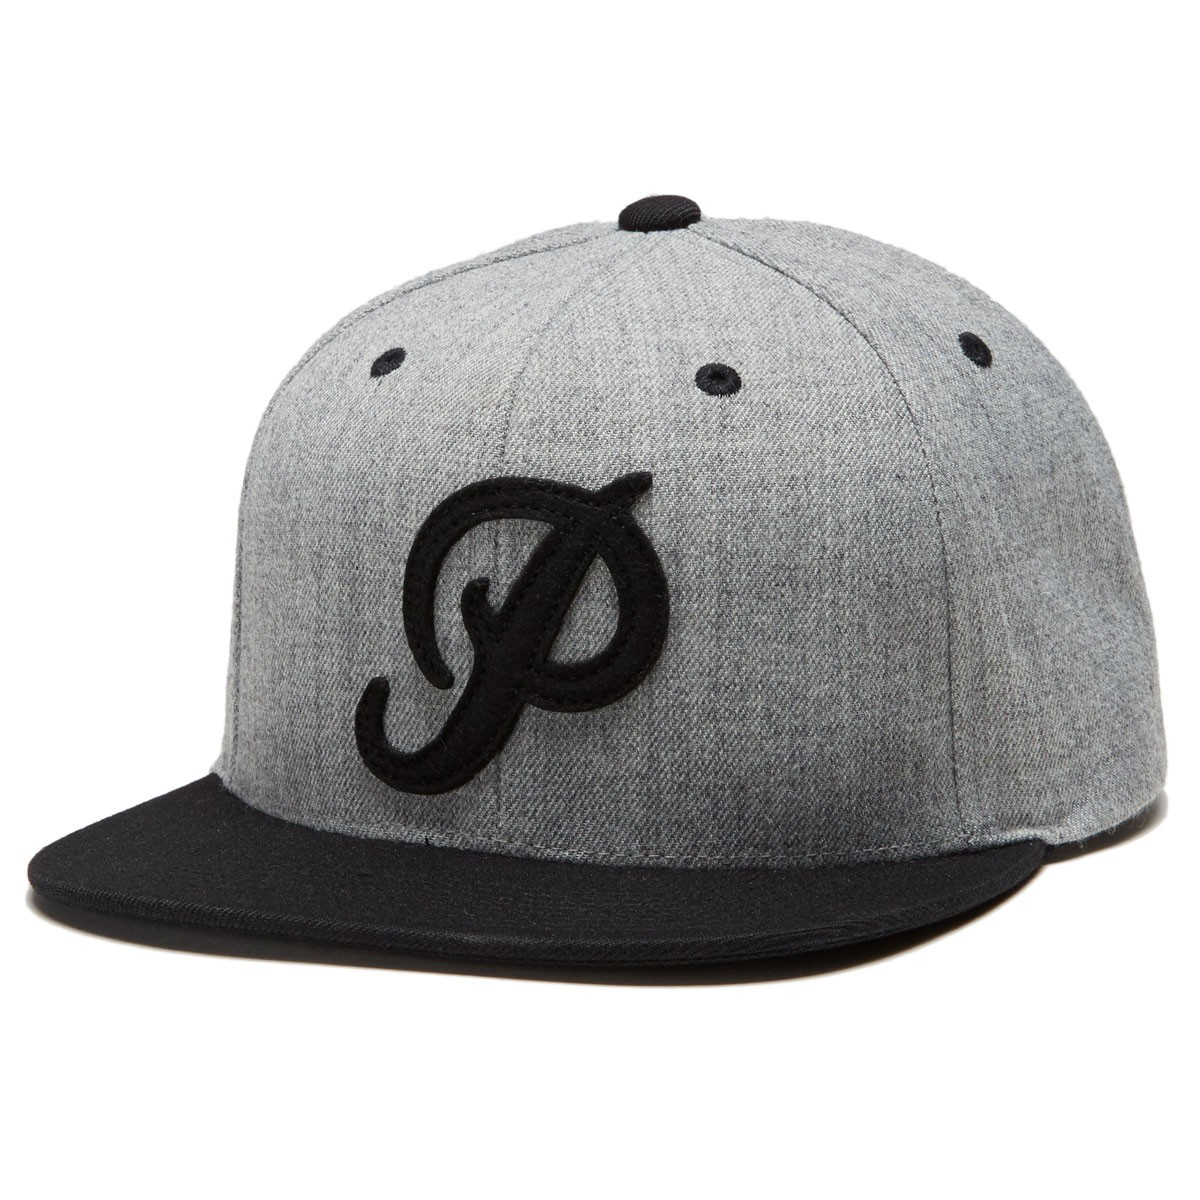 Primitive šiltovka FELT CLASSIC P SNAPBACK - heather grey